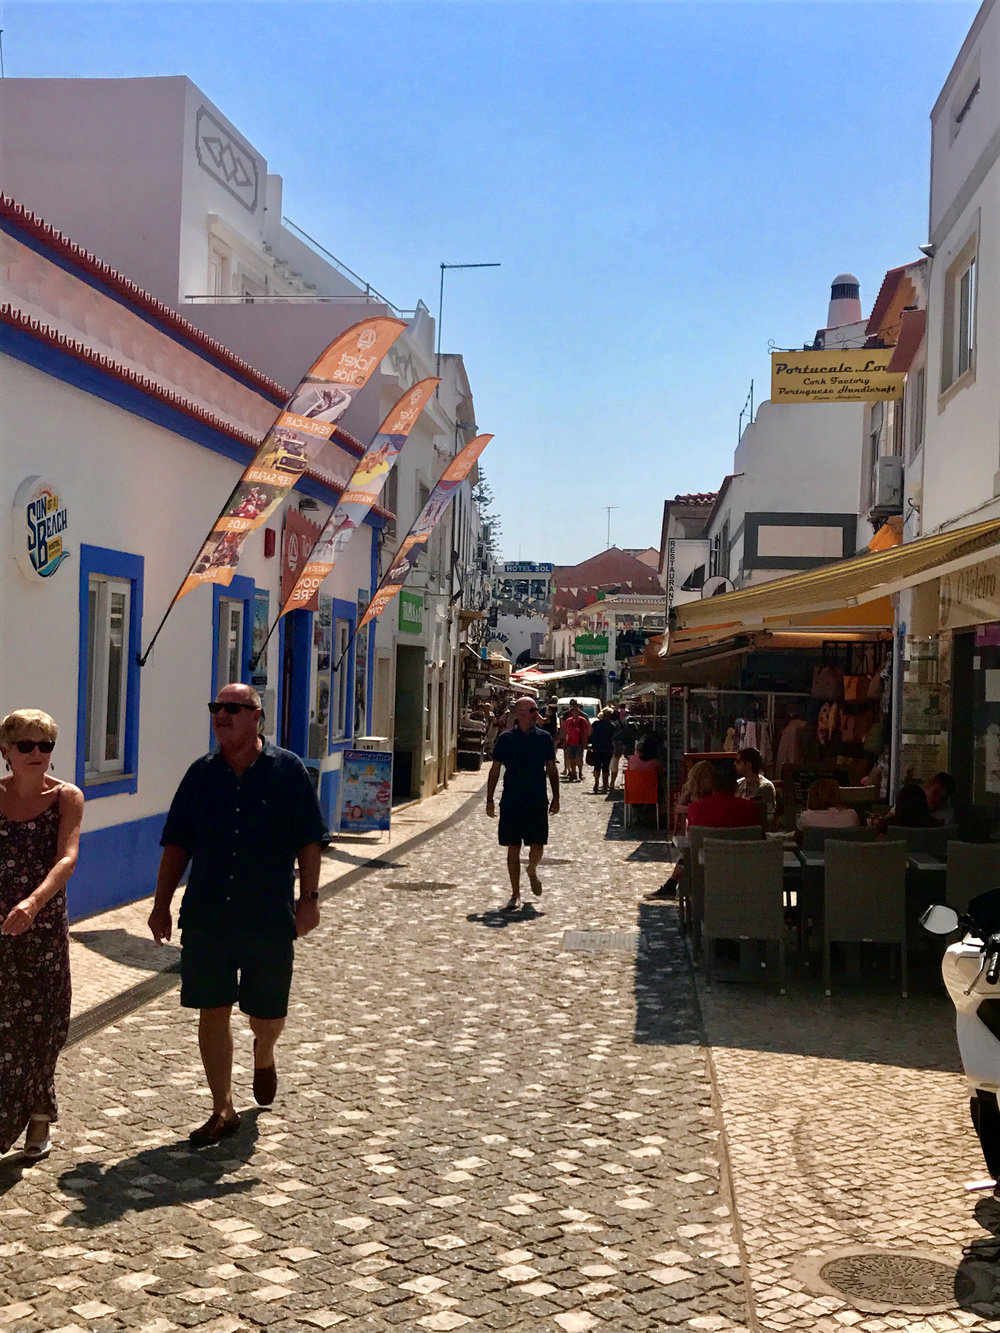 Wondering-Through-Visit-Albufeira-Portugal-Beach-Sun-Sea-Sand-September-Old-Town-Street-Shopping.JPG